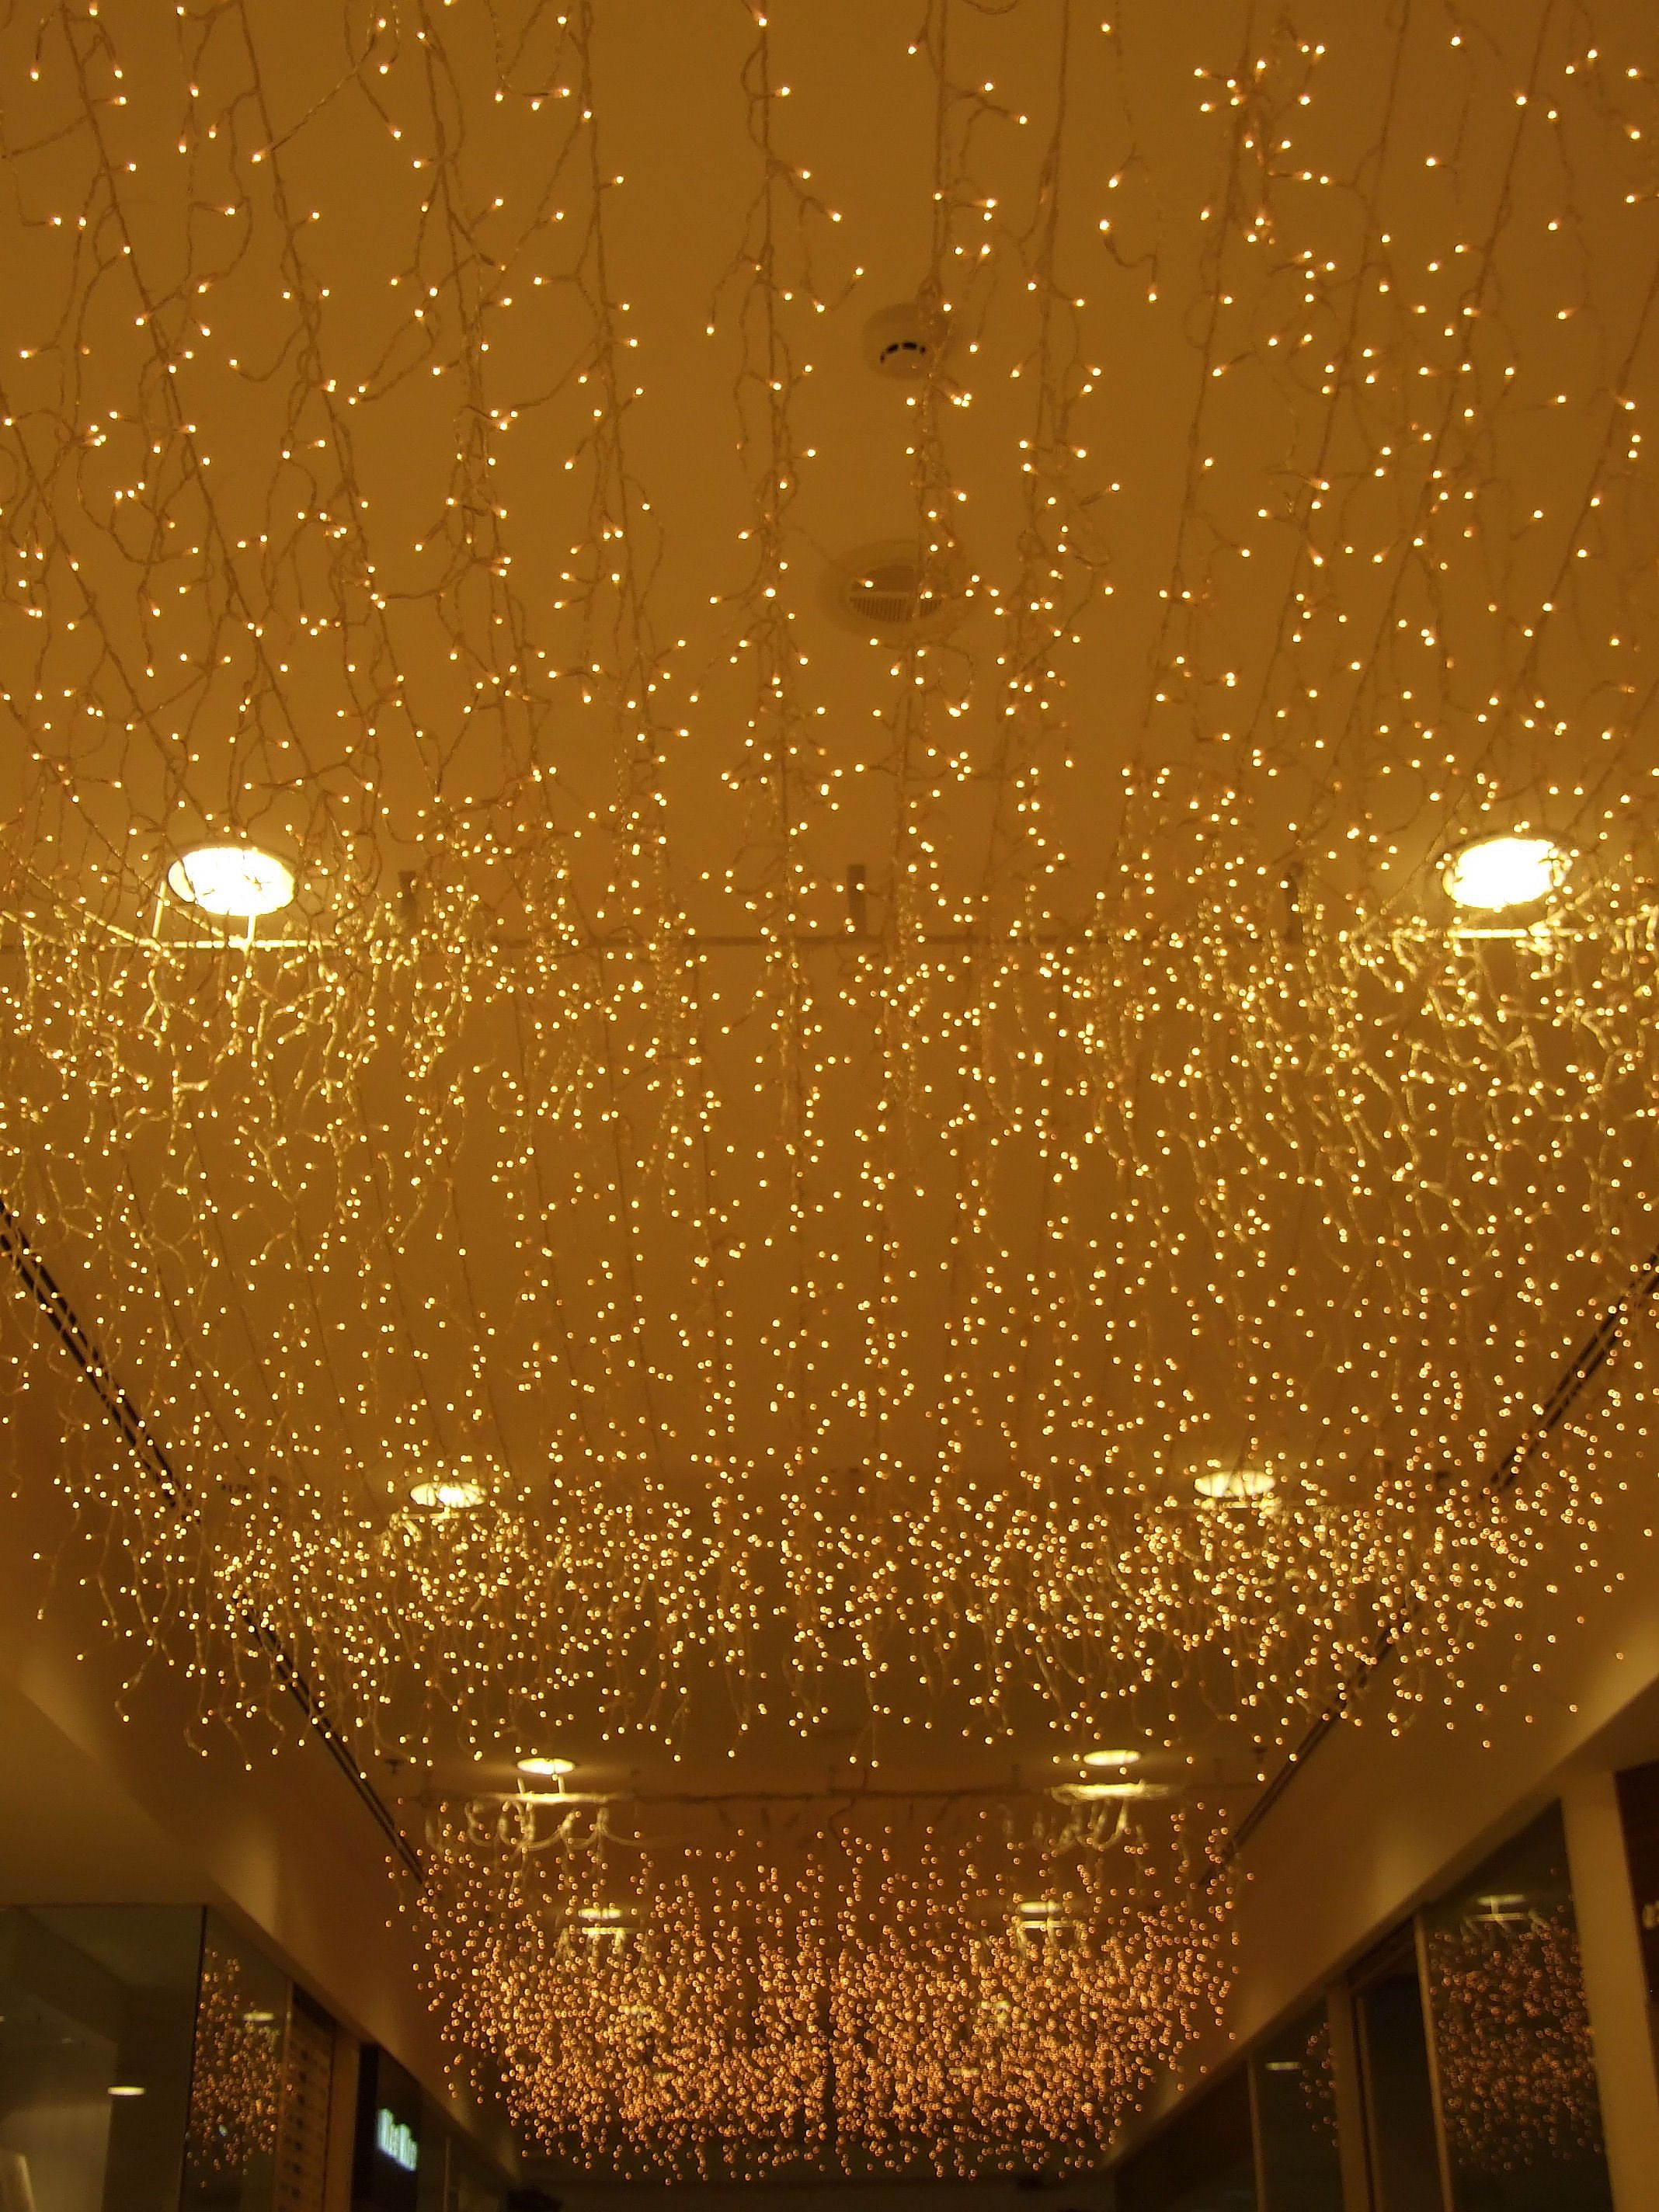 10 Decorating Ideas With Christmas Lights   christmas   Pinterest     Ceiling Christmas lights